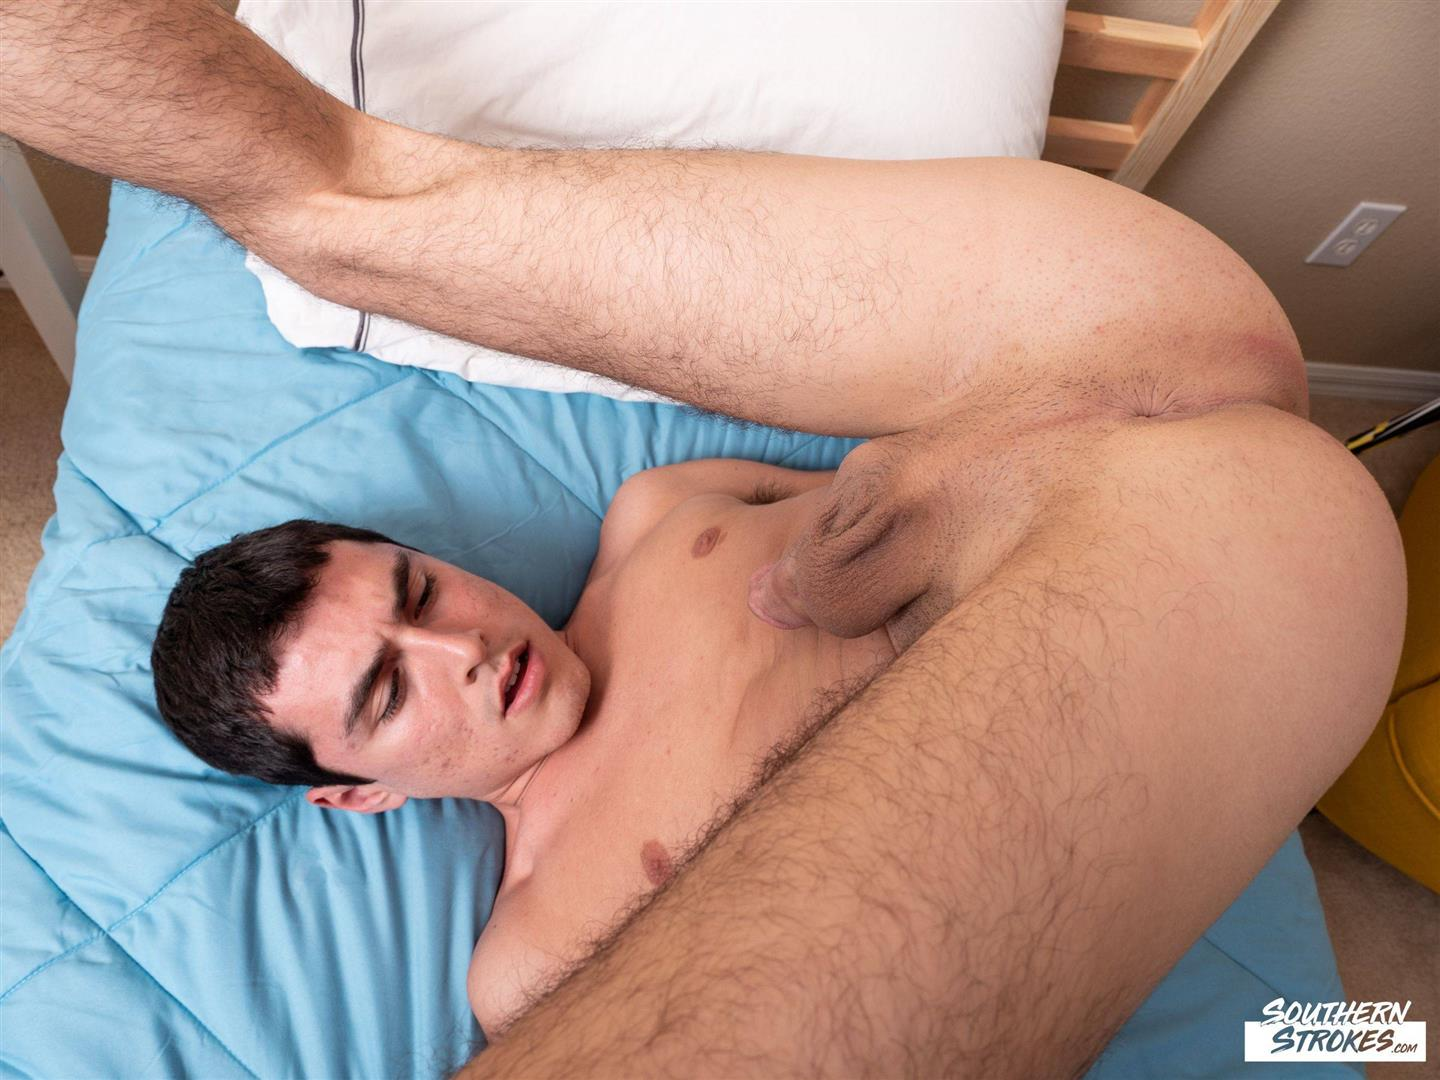 Southern-Strokes-Xavier-Ryan-twink-jerking-off-his-big-cock-free-gay-video-16 Xavier Ryan Jerking His Big Cock And Shoots A Load In His Mouth